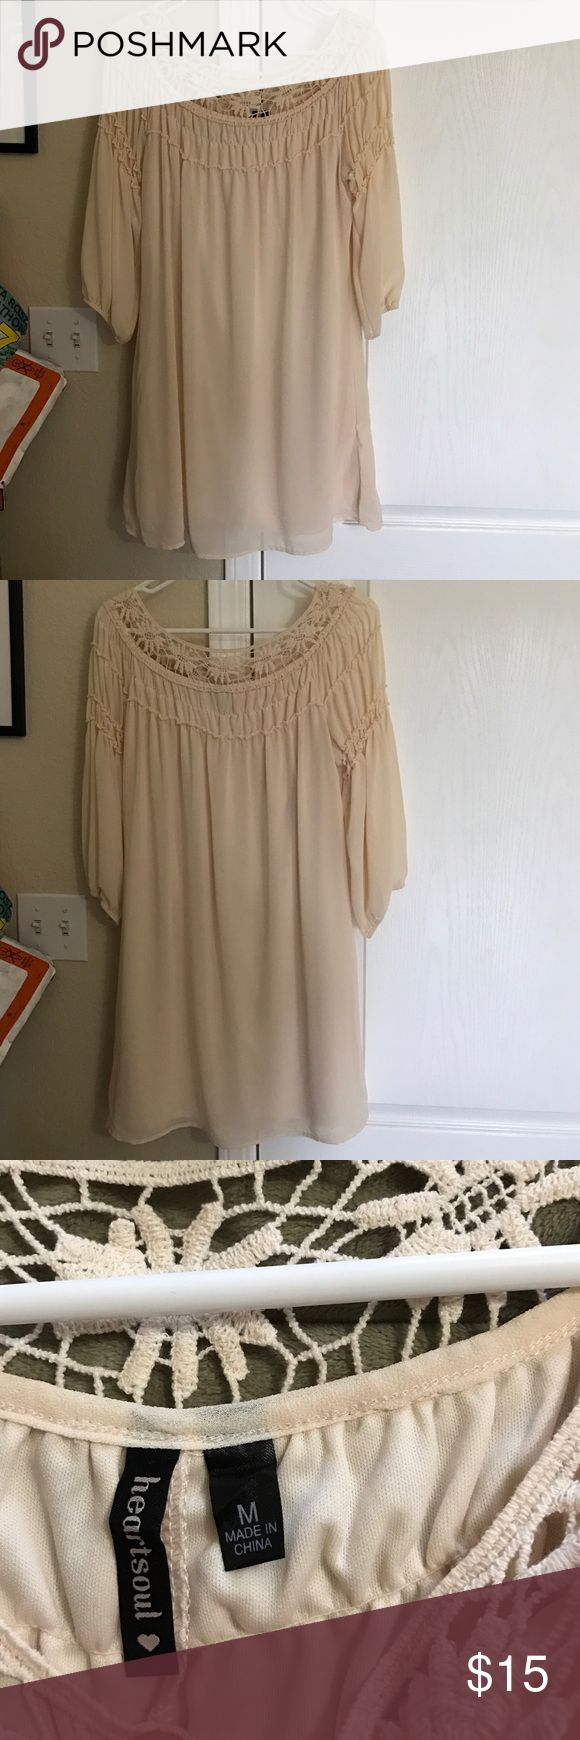 Cream Colored Dress NWOT Bought to wear to a function that was cancelled so never worn. Brand is Heartsoul. Size Medium. Dress up with some cute jewelry and pumps!! Classic Look! Dresses Midi